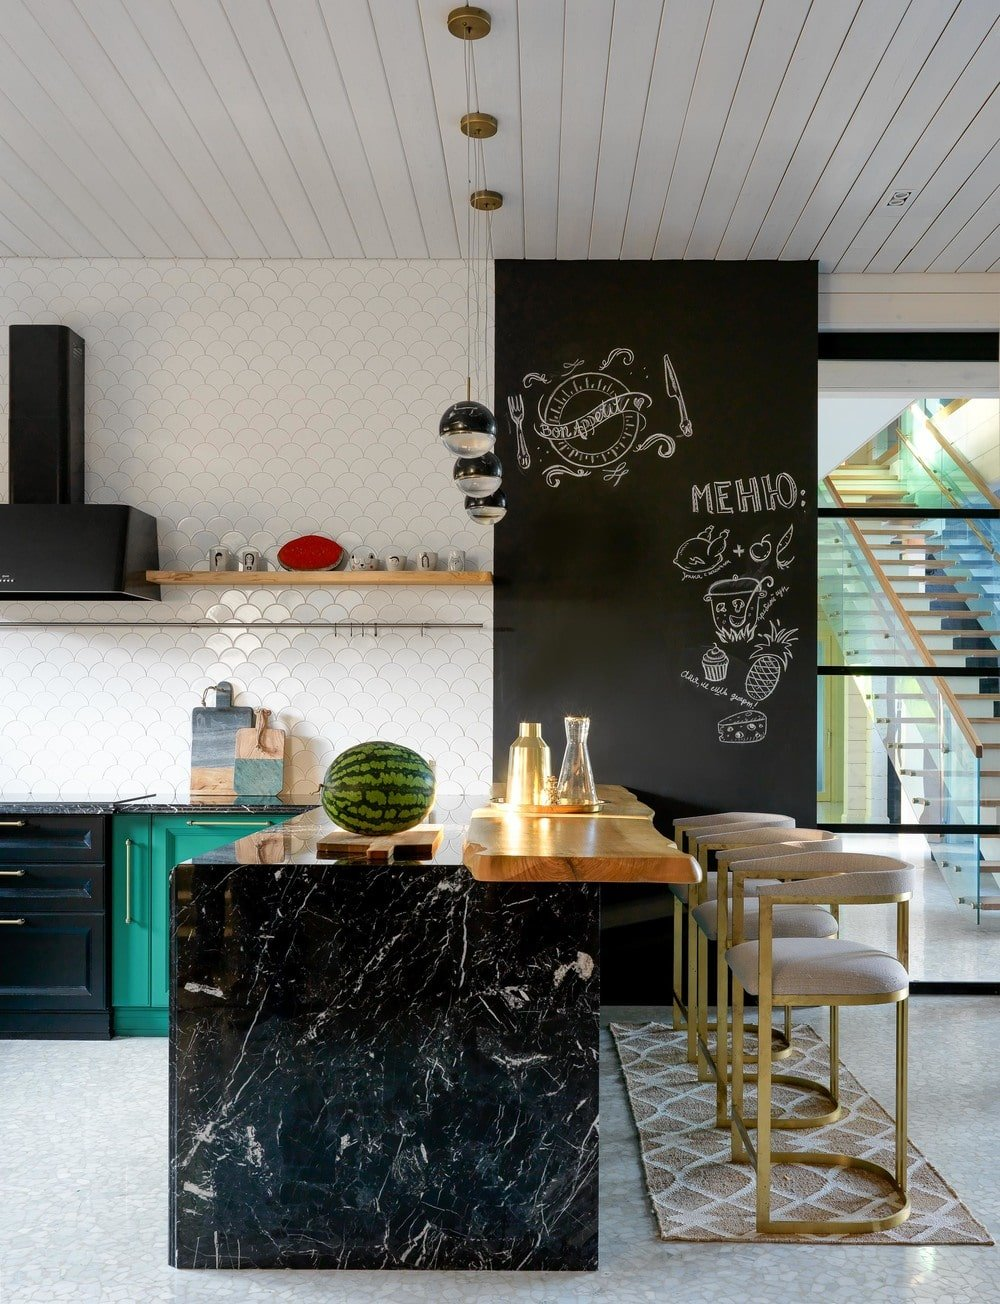 The cabinetry extends and forms a peninsula with a black marble surface to match the black wall on the side of the breakfast bar making the beige modern stools stand out.